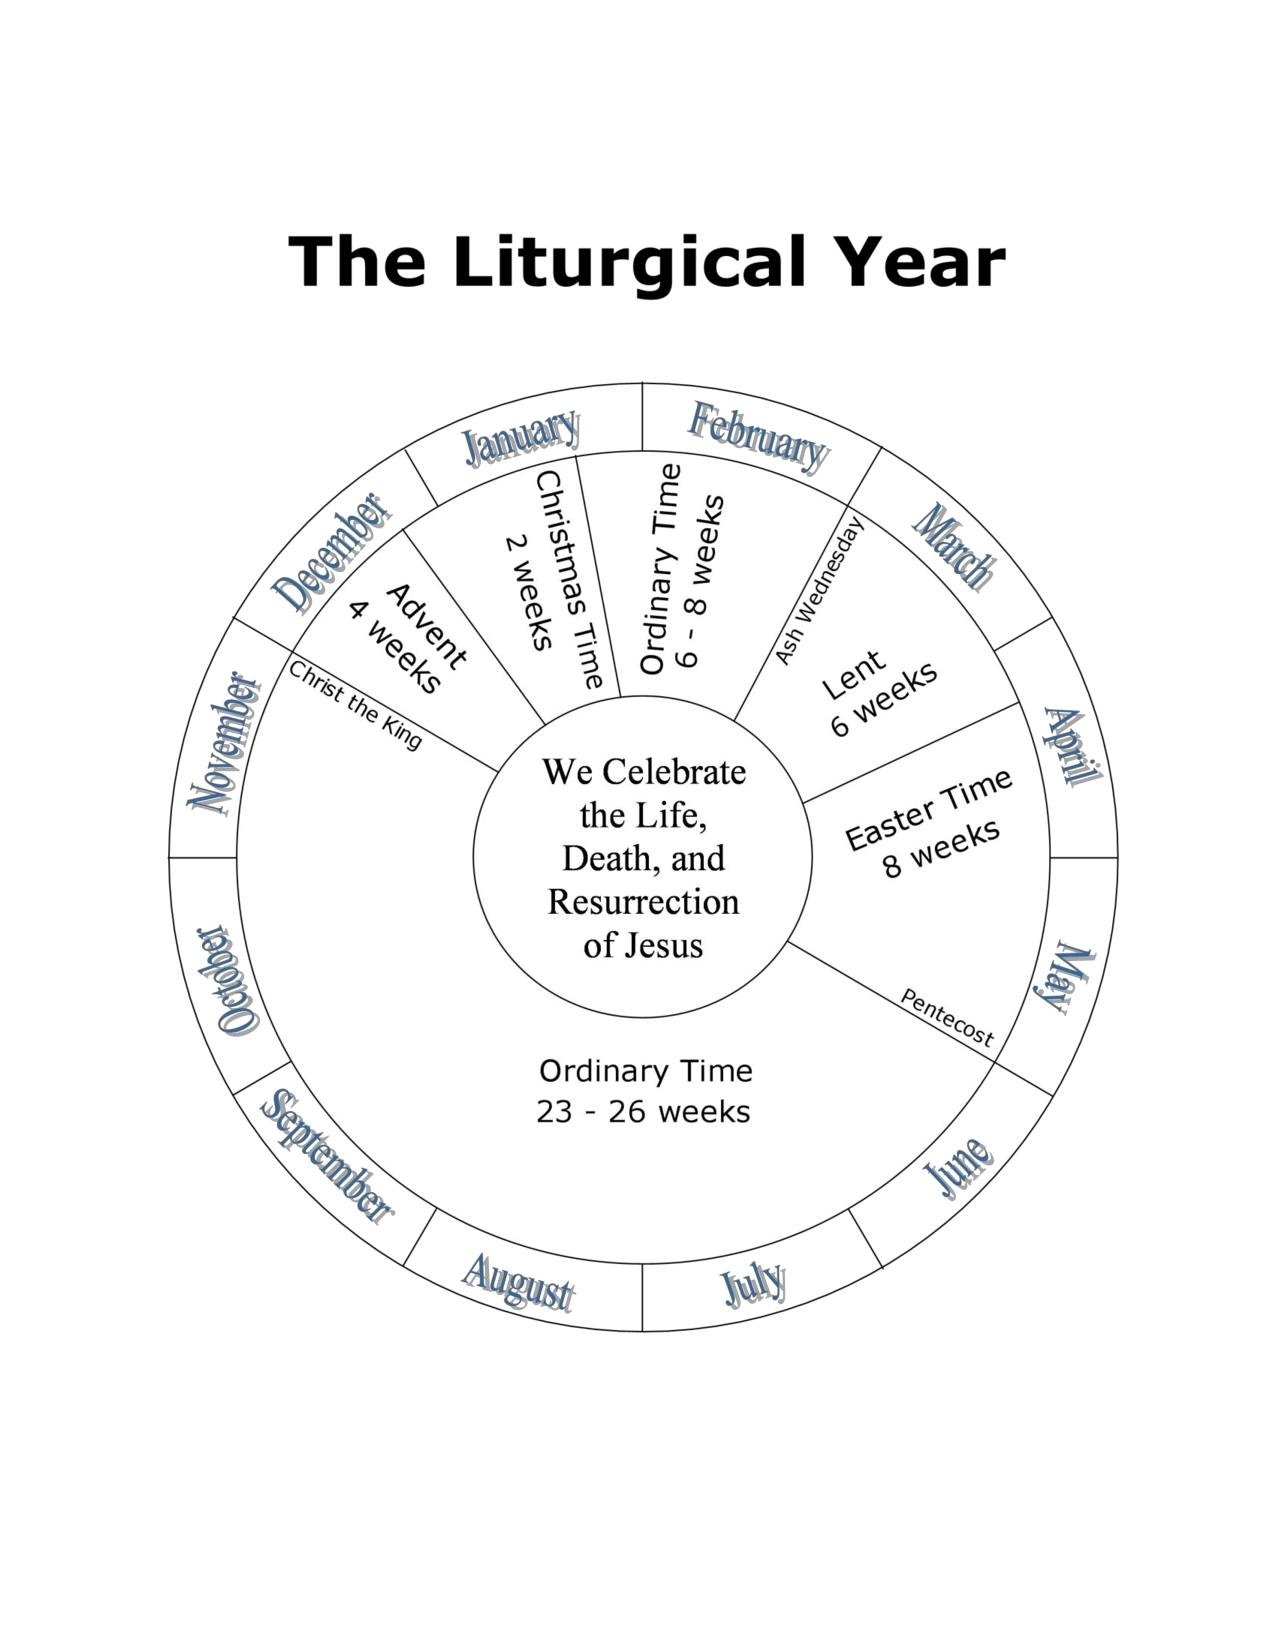 Pin On Catholic And Religious within Liturgical Calender Printable Version Catholic